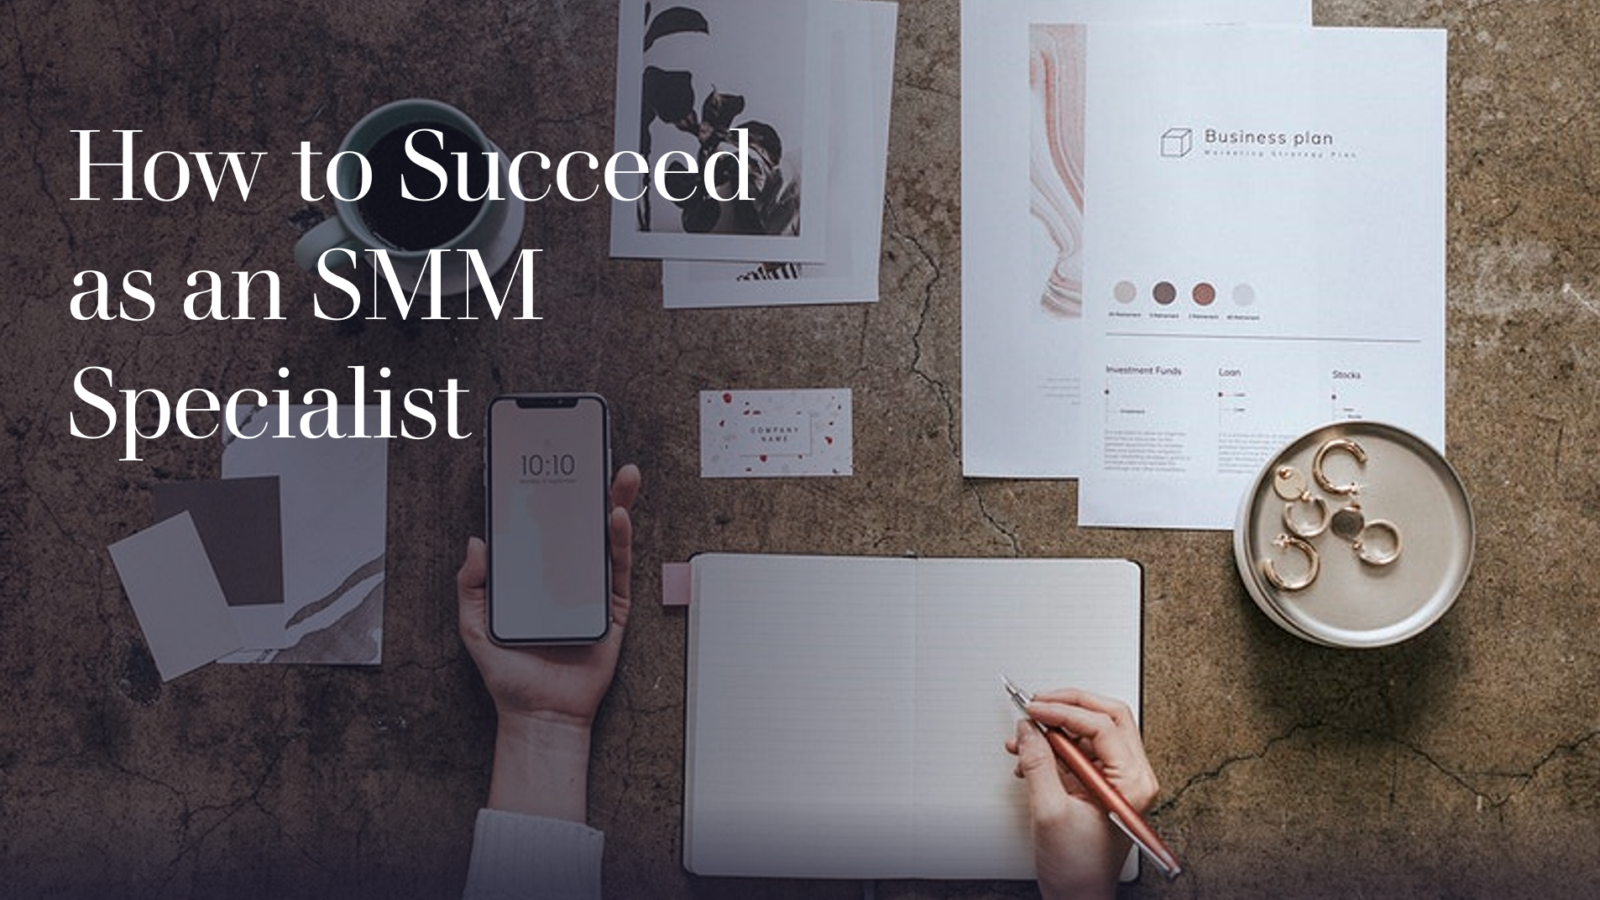 How to Succeed as an SMM Specialist